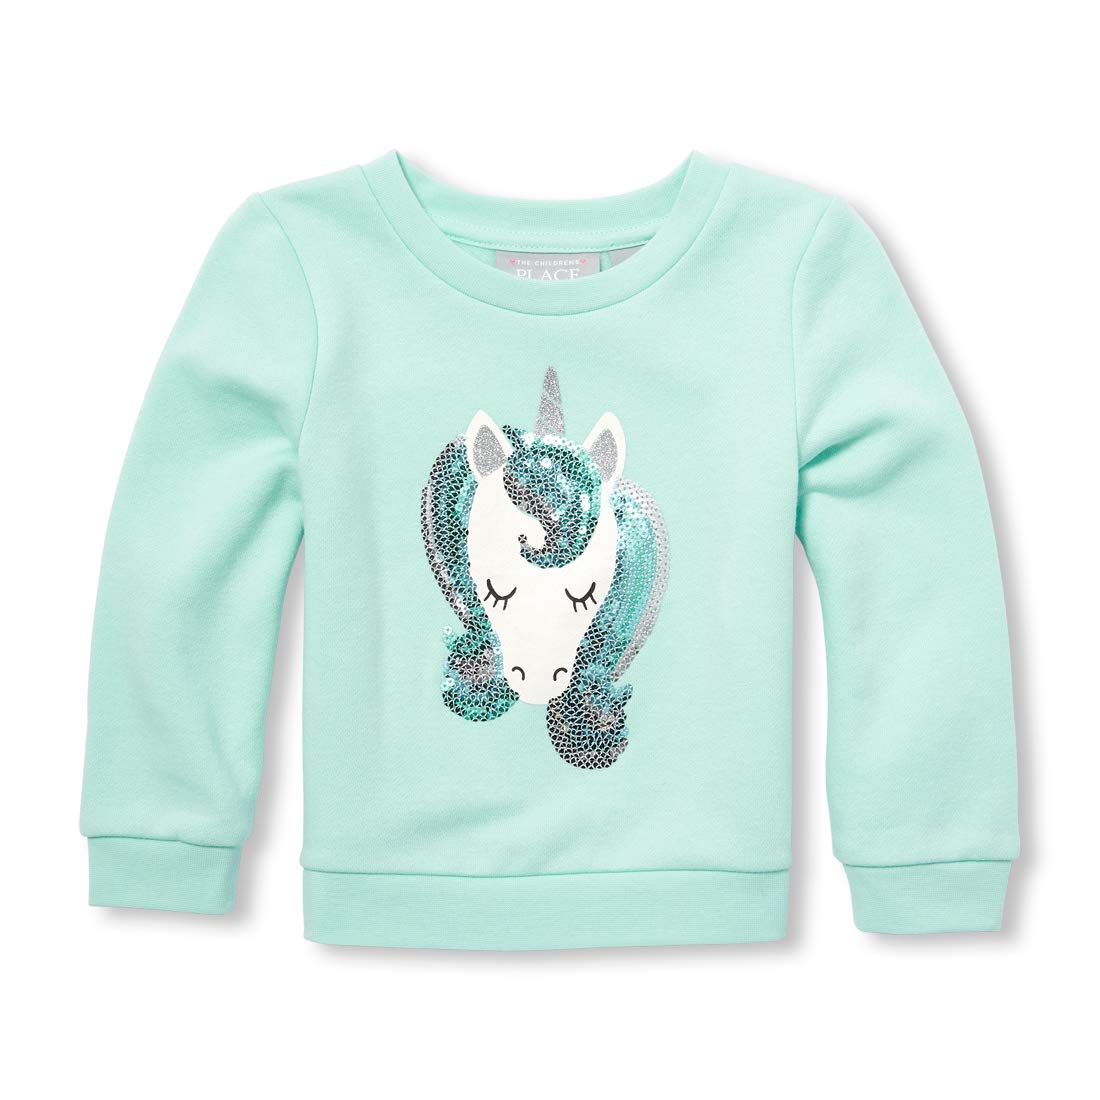 The Children's Place Girls' Toddler Graphic Fleece The Children' s Place 2116030